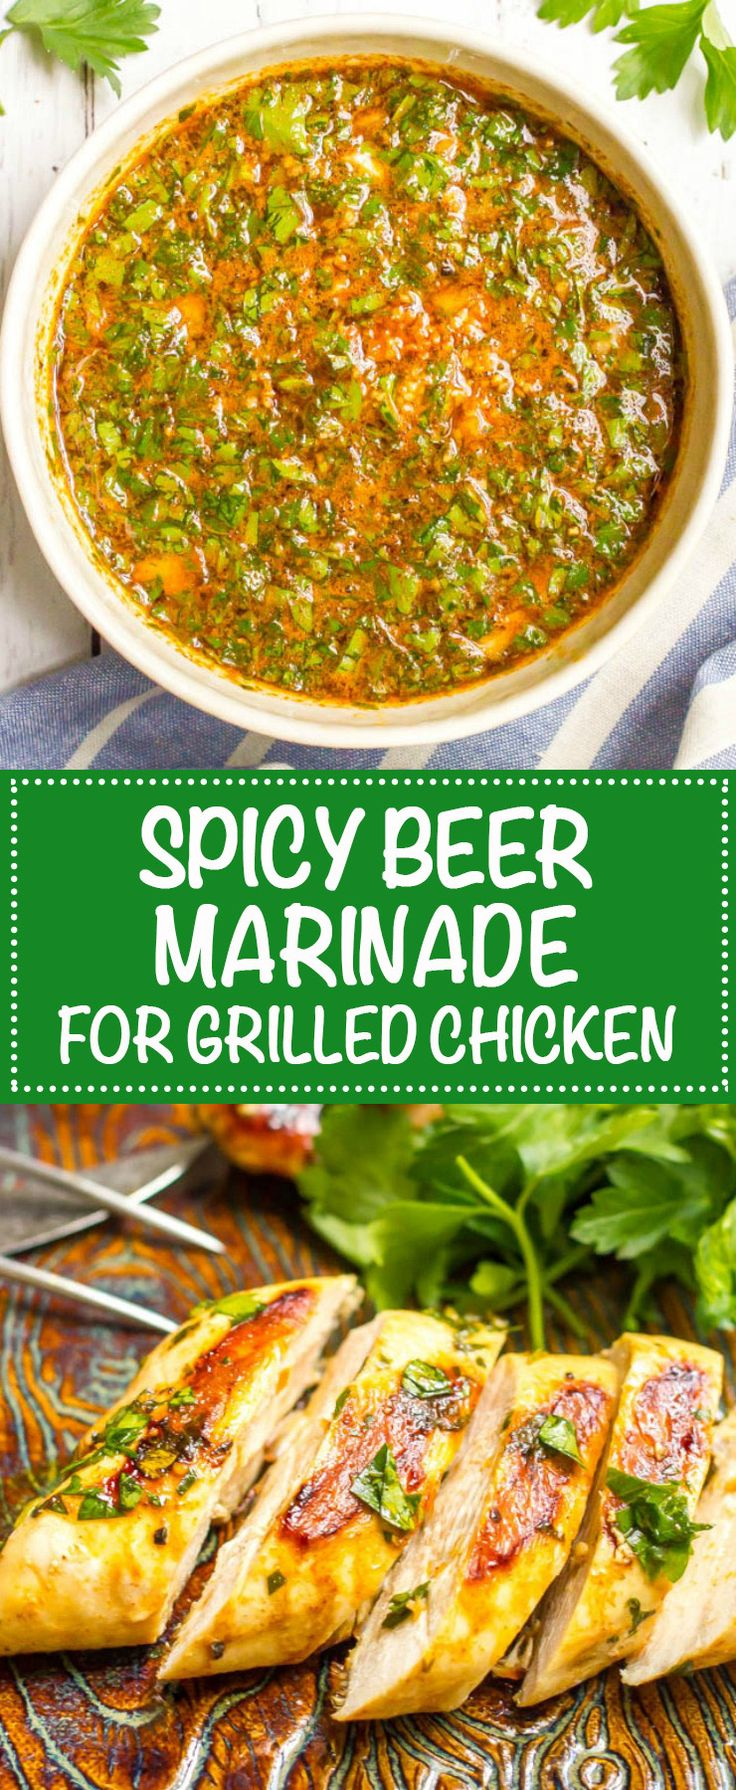 Spicy beer marinade for chicken collage (Lime Chicken Marinade)